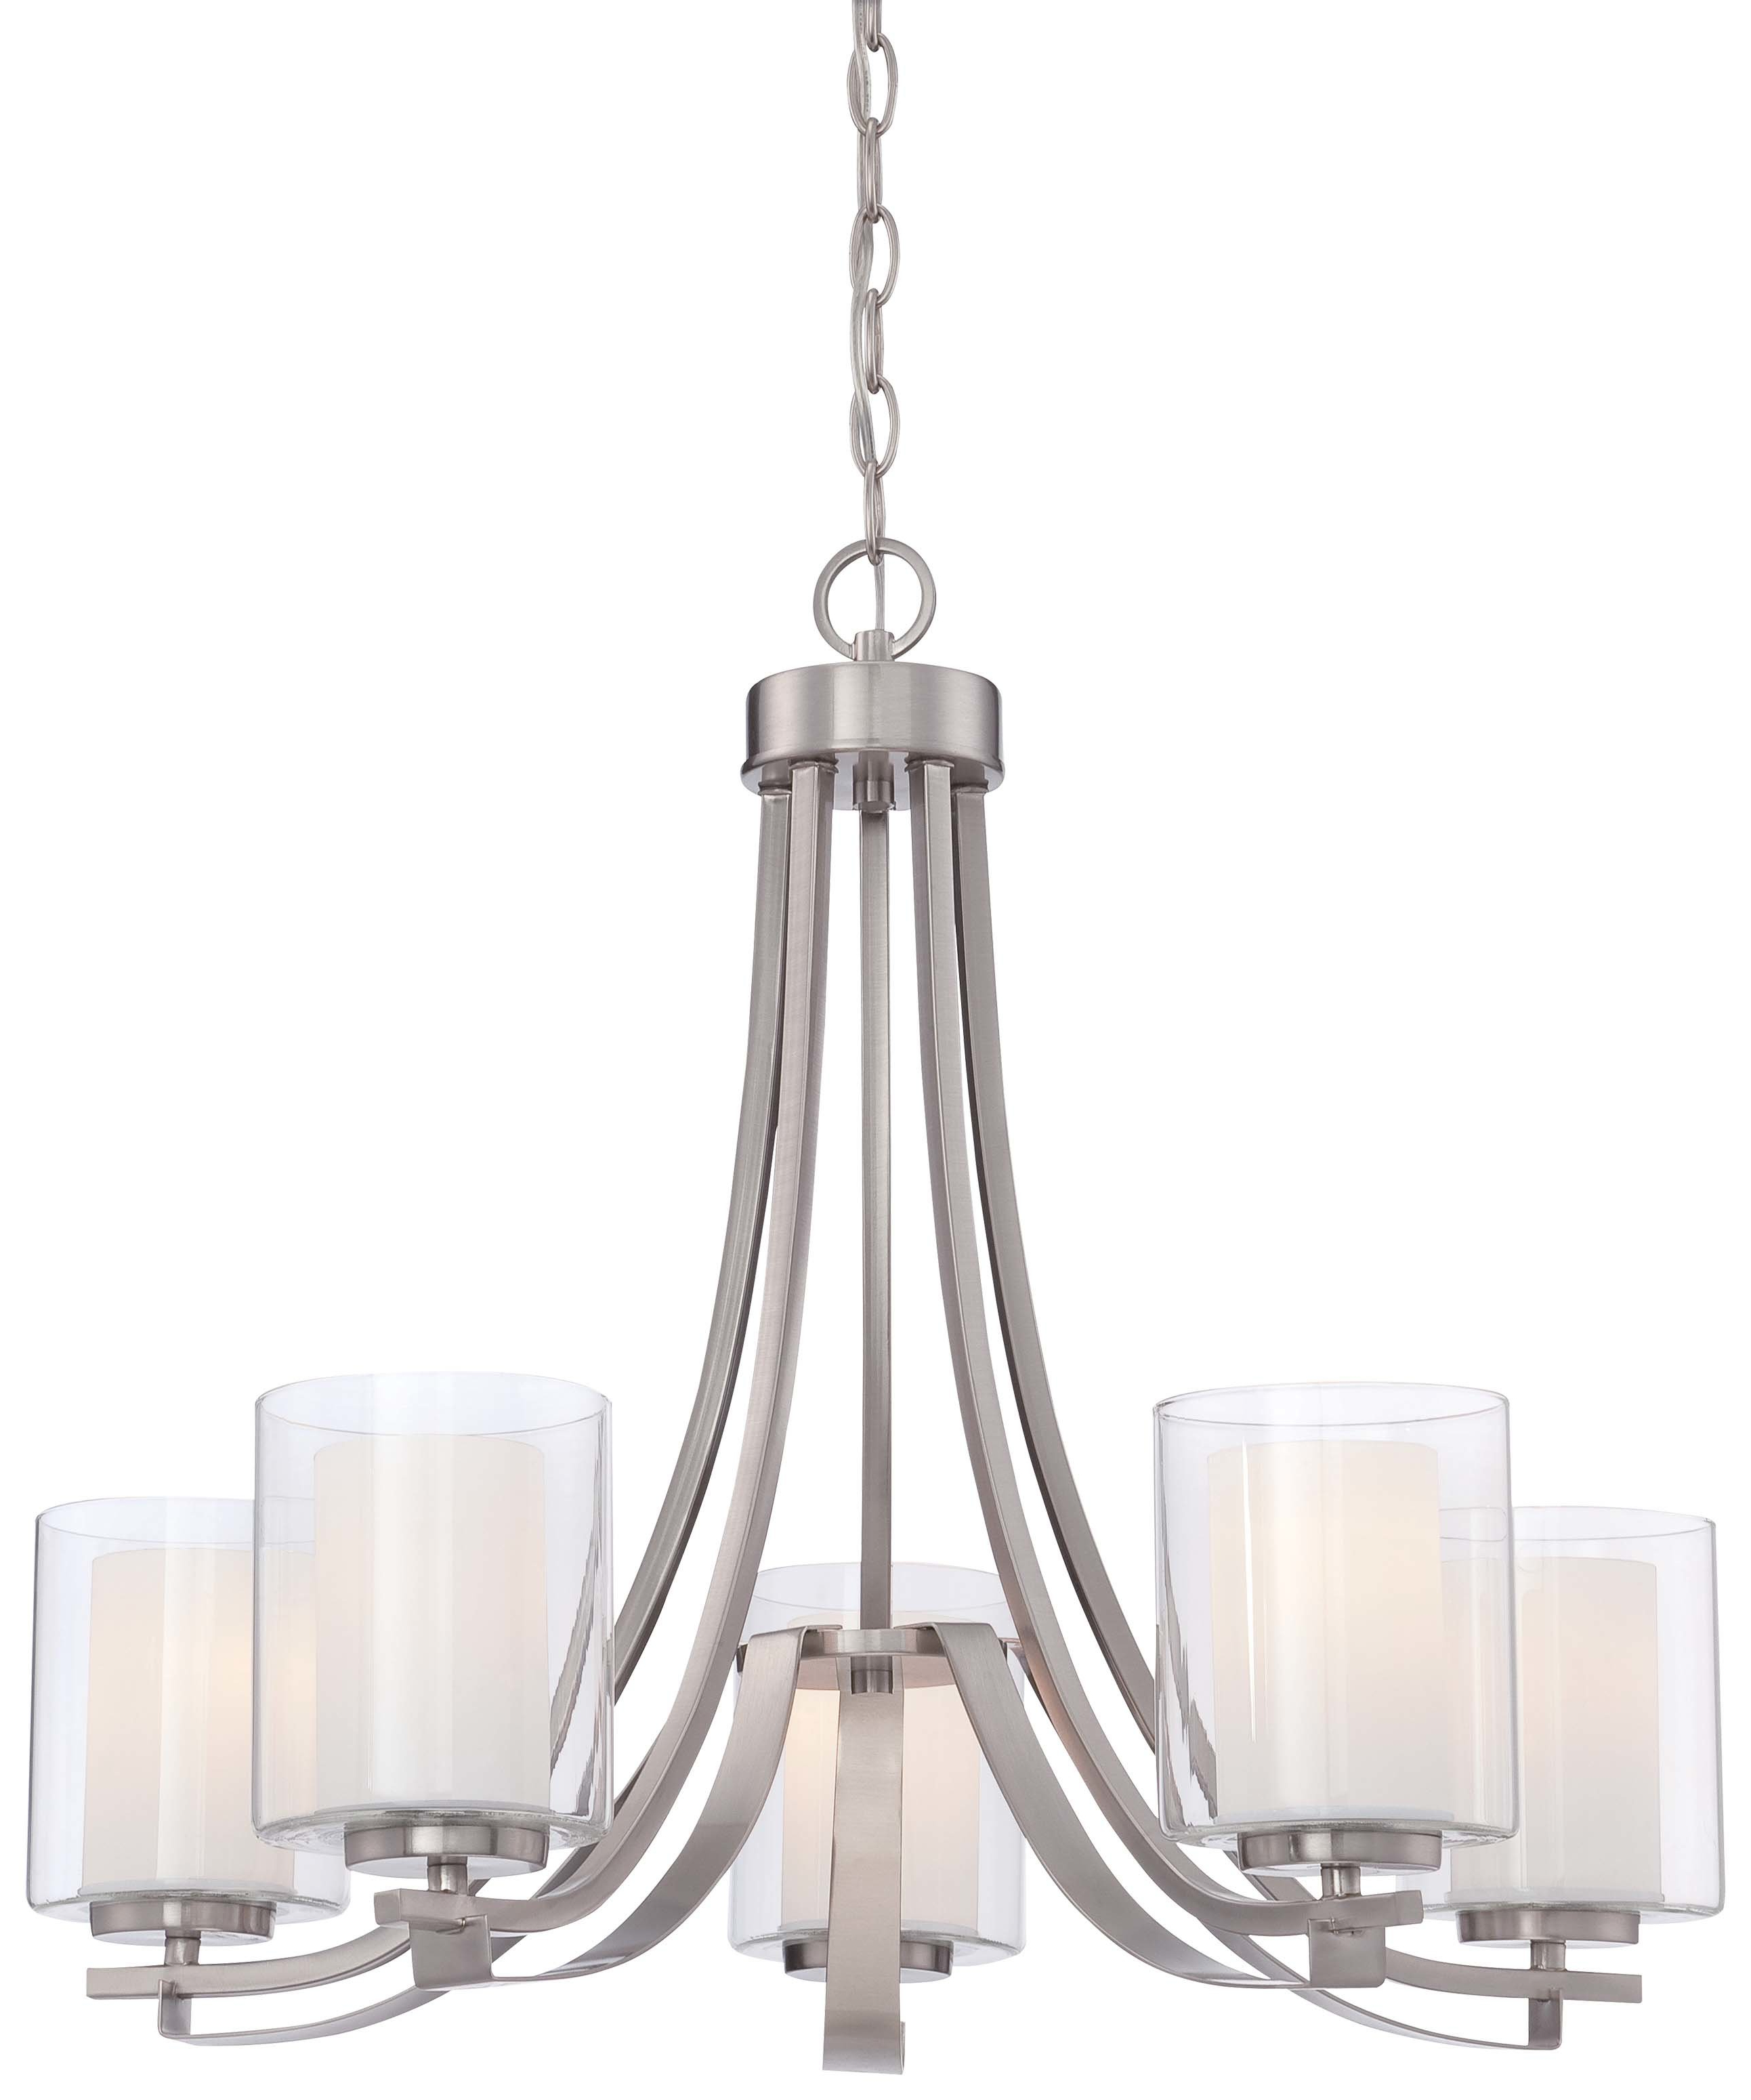 Best And Newest Crofoot 5 Light Shaded Chandeliers For Demby 5 Light Shaded Chandelier (View 2 of 25)